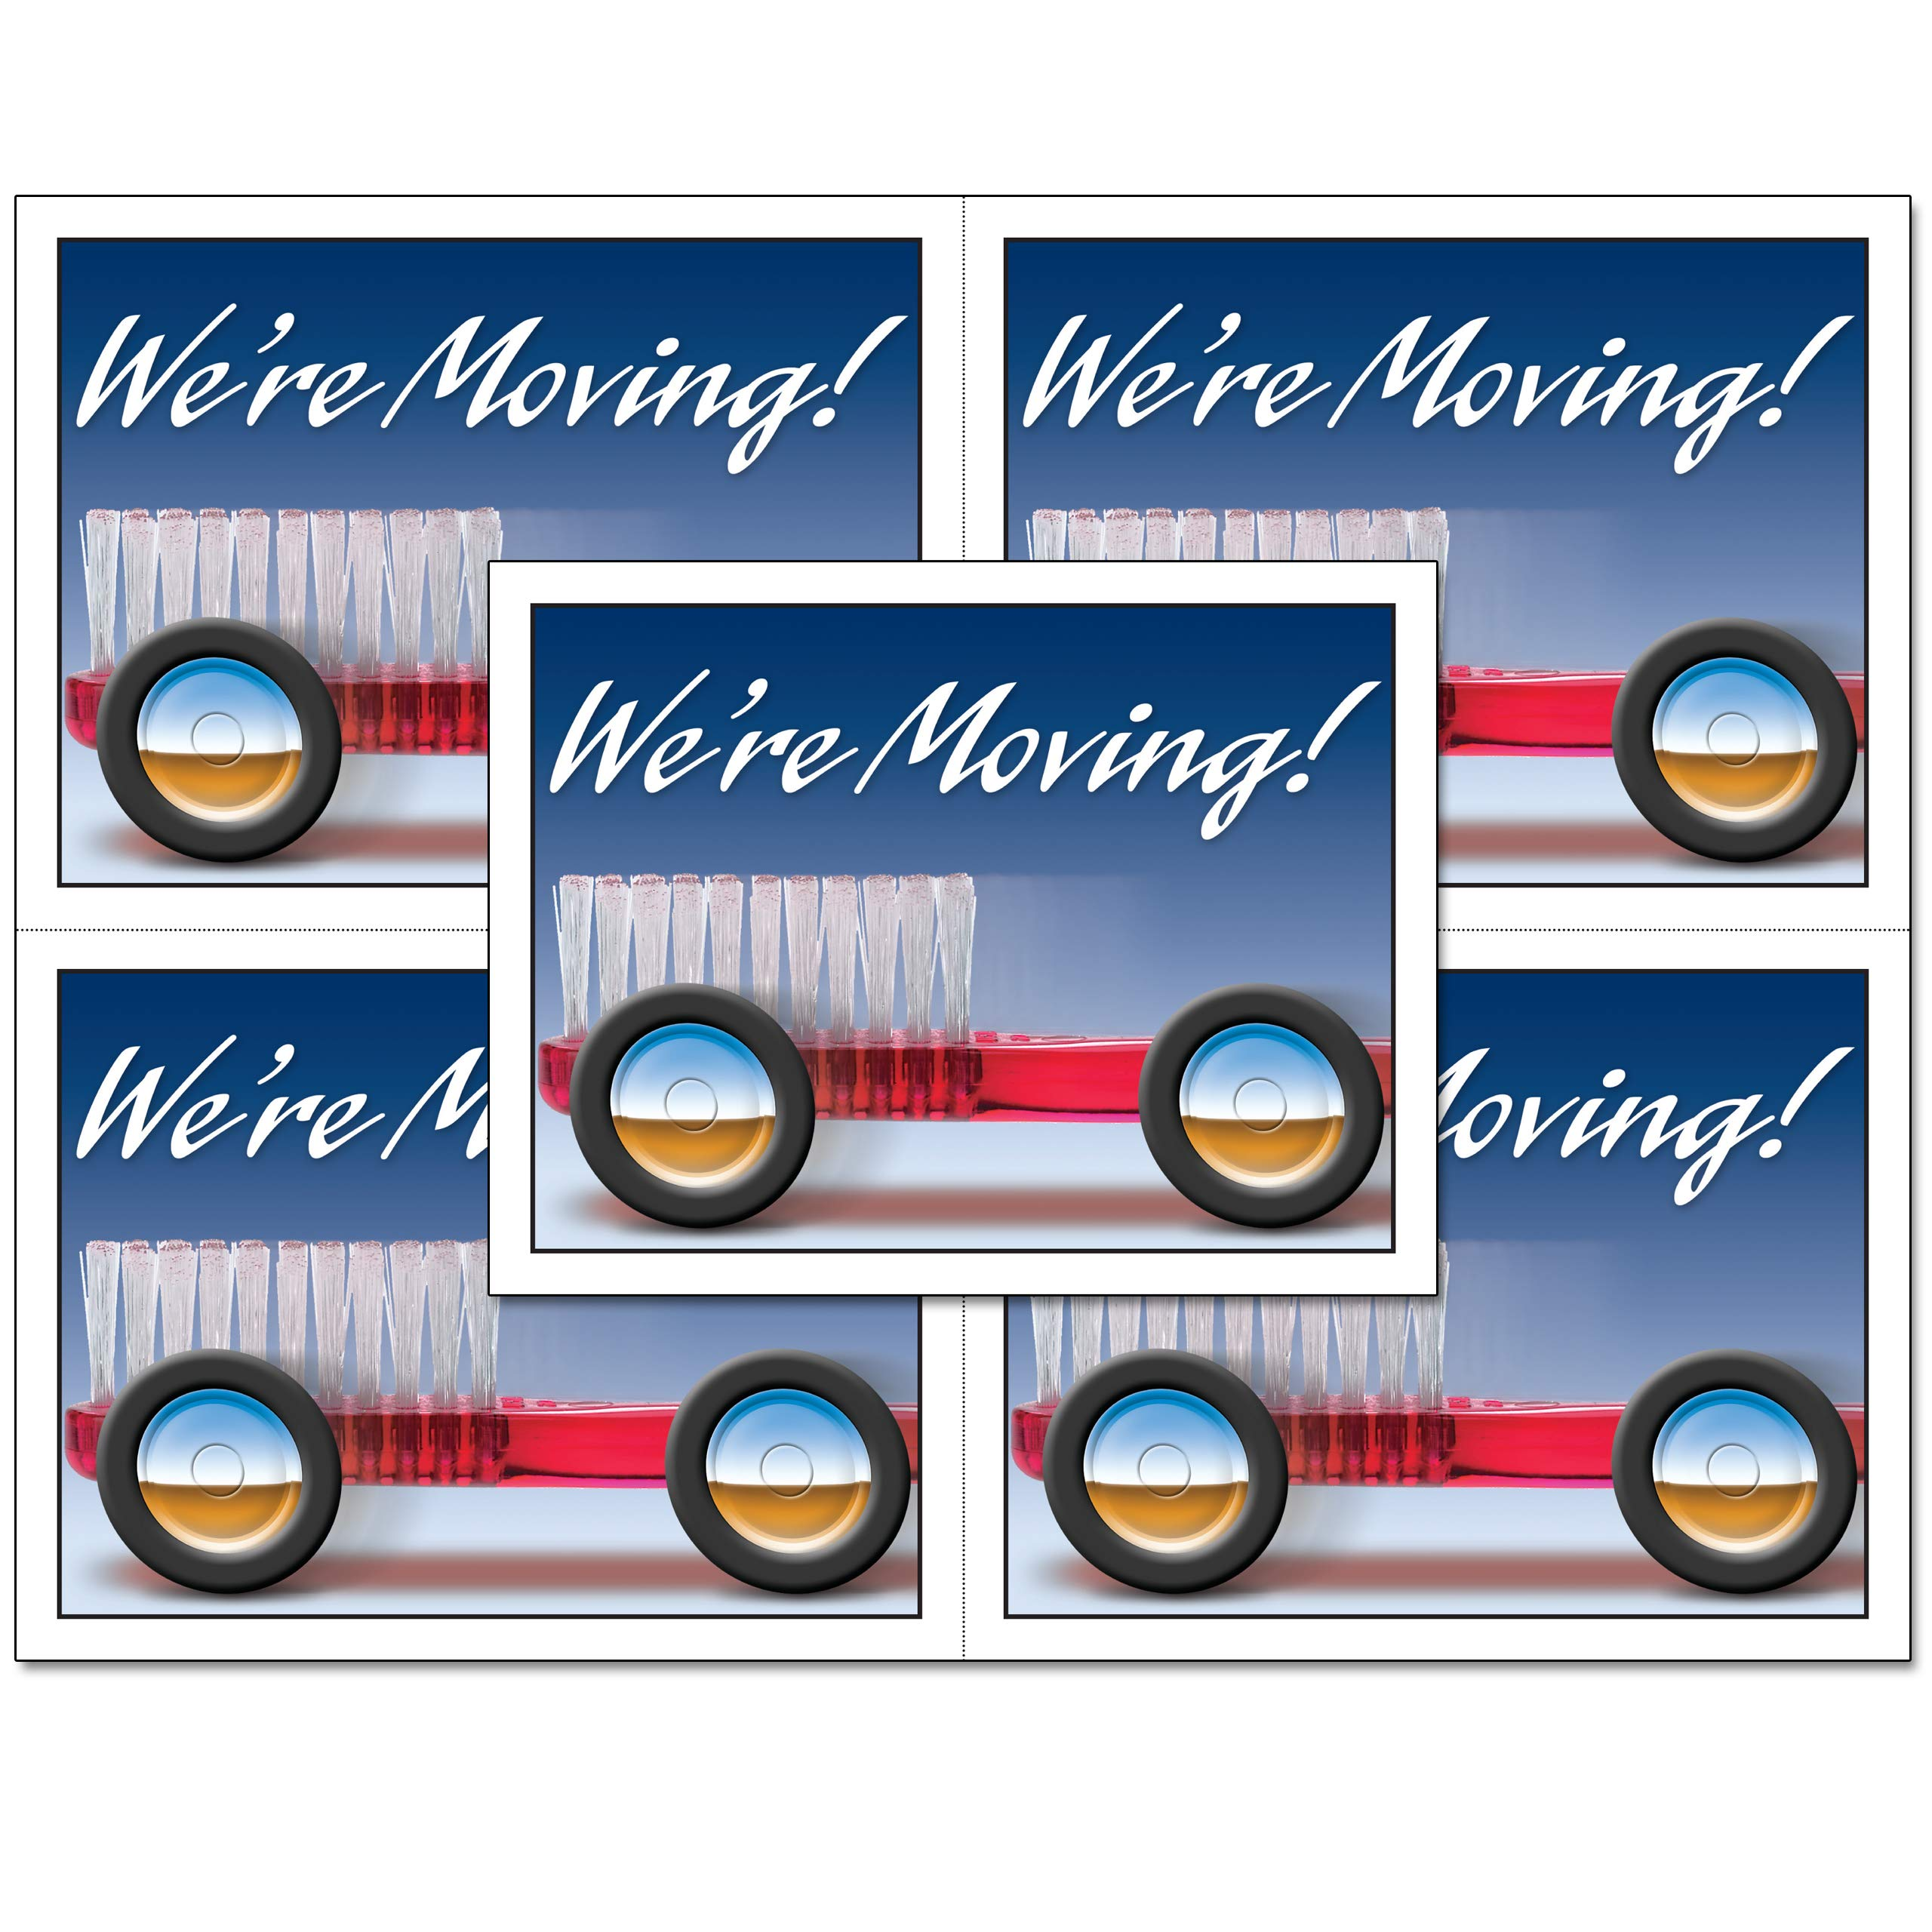 Laser Reminder Moving Notice Postcards, Dental Moving Notice Postcards. 4 Cards Perforated for Tear-Off at 4.25'' x 5.5'' on an 8.5'' x 11'' Sheet of 8 Pt Card Stock. MOV520LZS (1000)